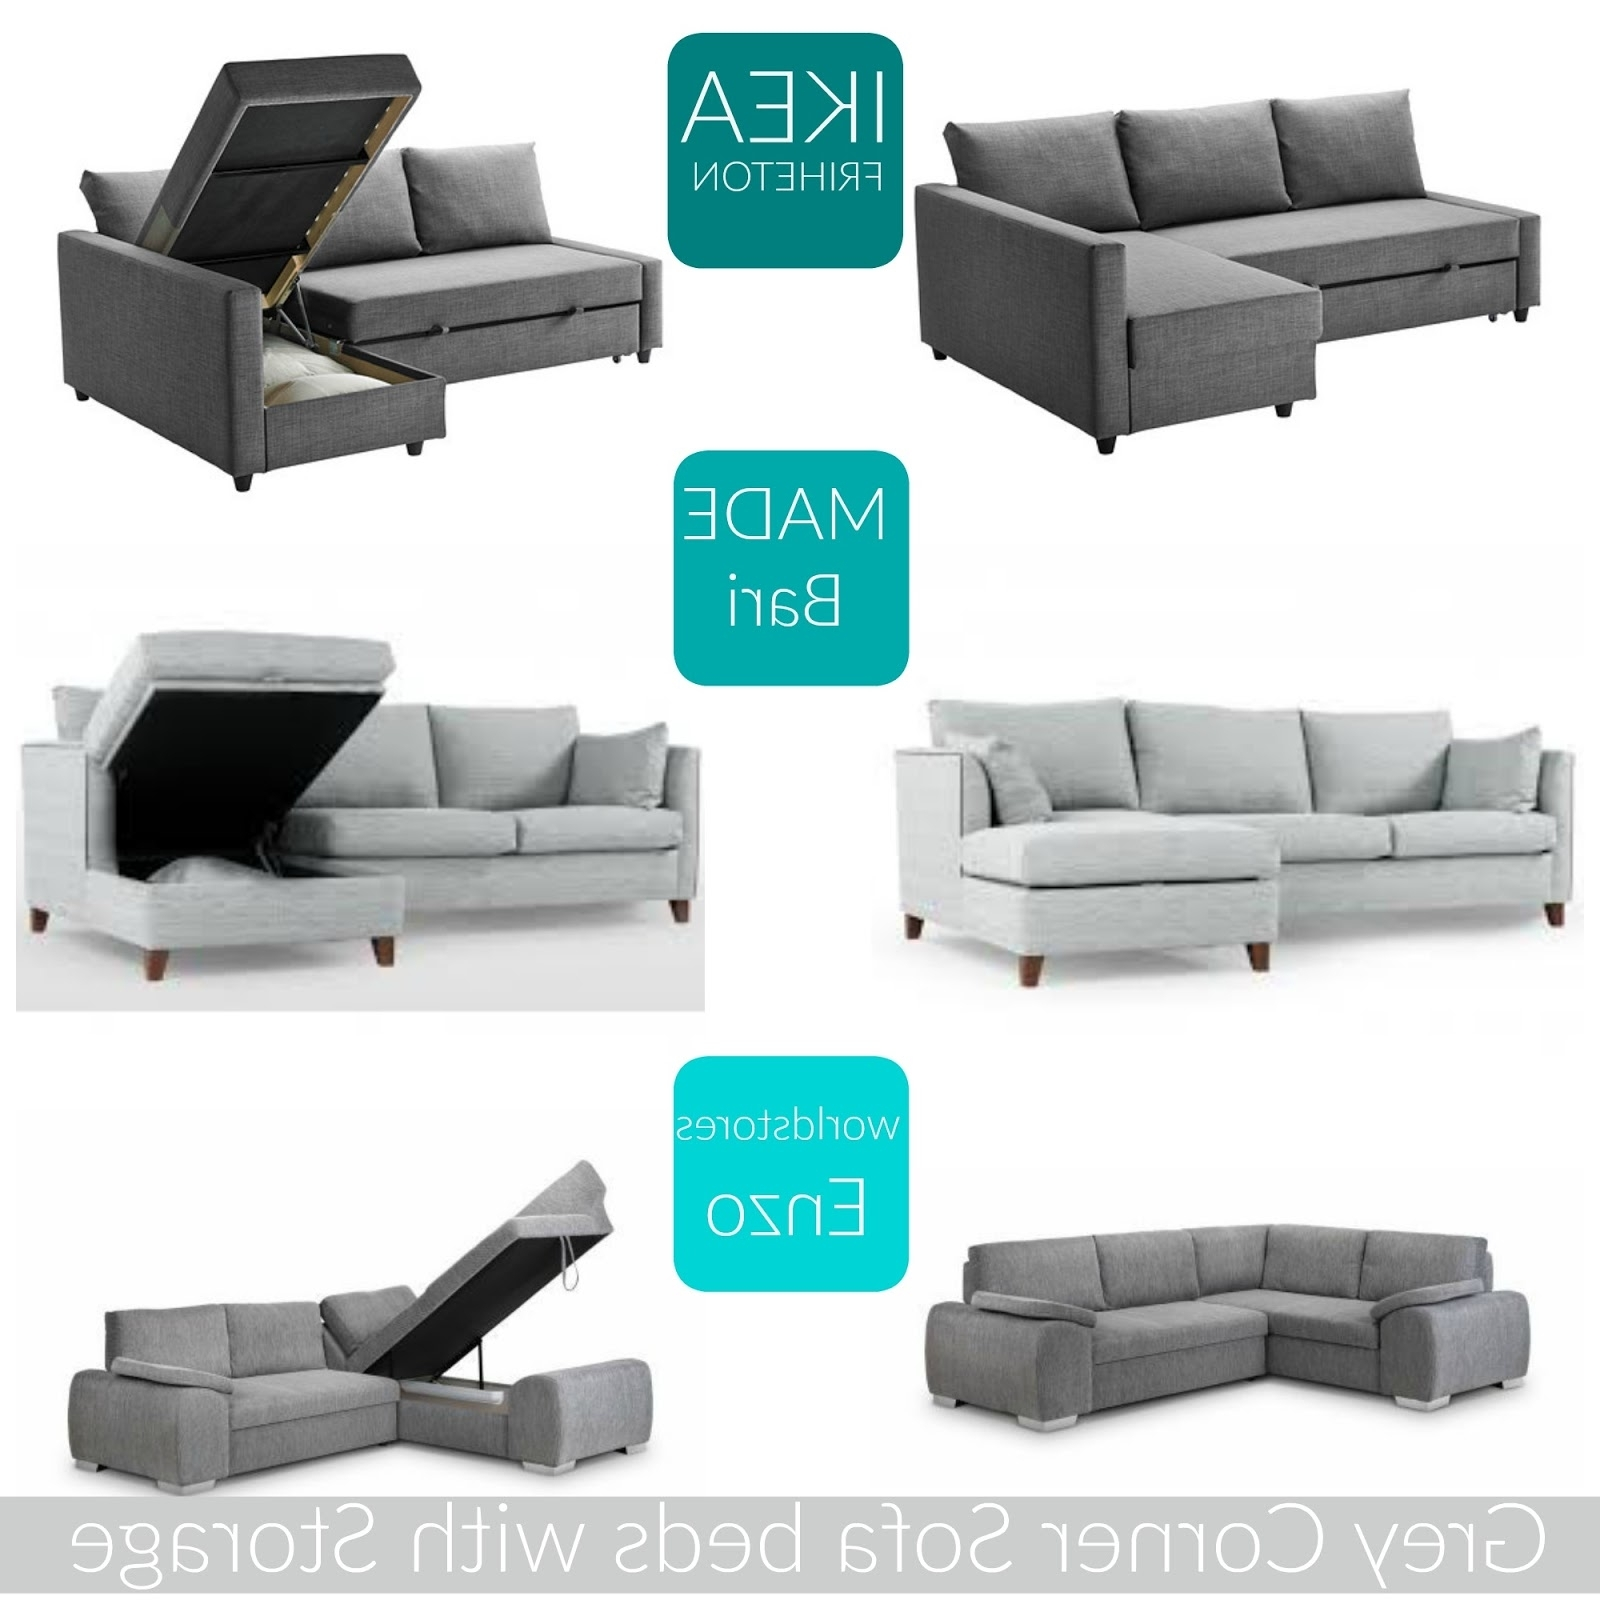 Famous Home: The Best Grey Corner Sofa Beds With Storage (View 14 of 15)